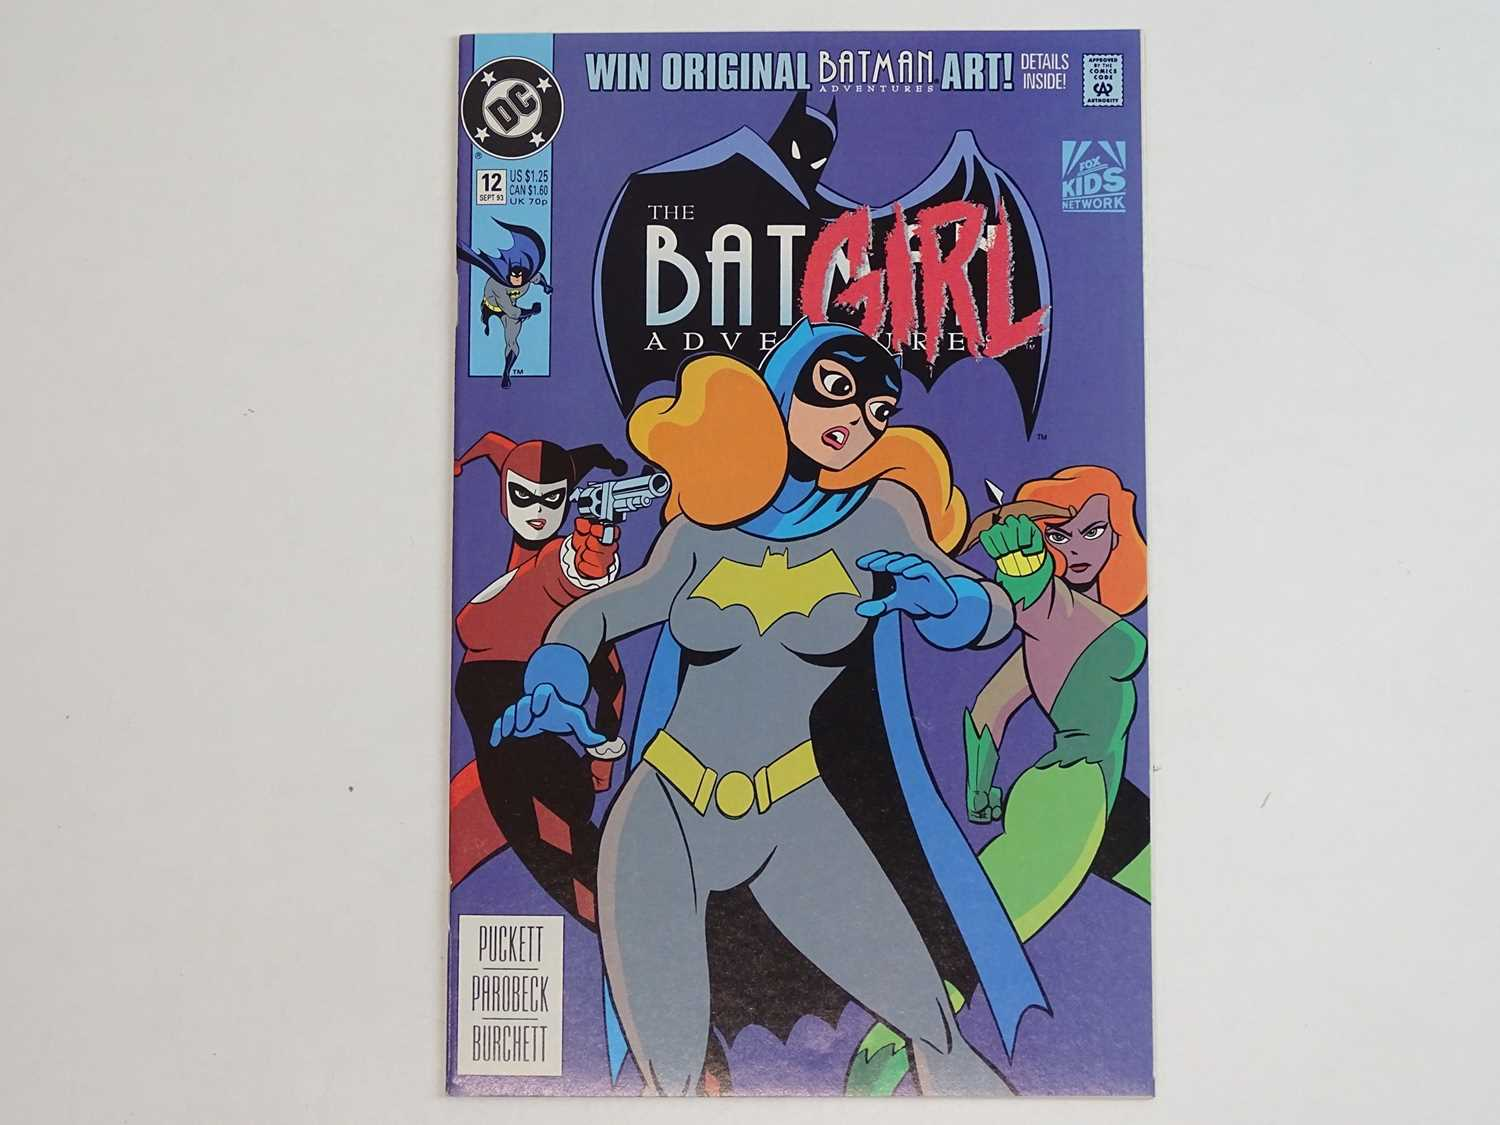 BATMAN ADVENTURES #12 - (1993 - DC) - First appearance of Harley Quinn in comics + Low initial print